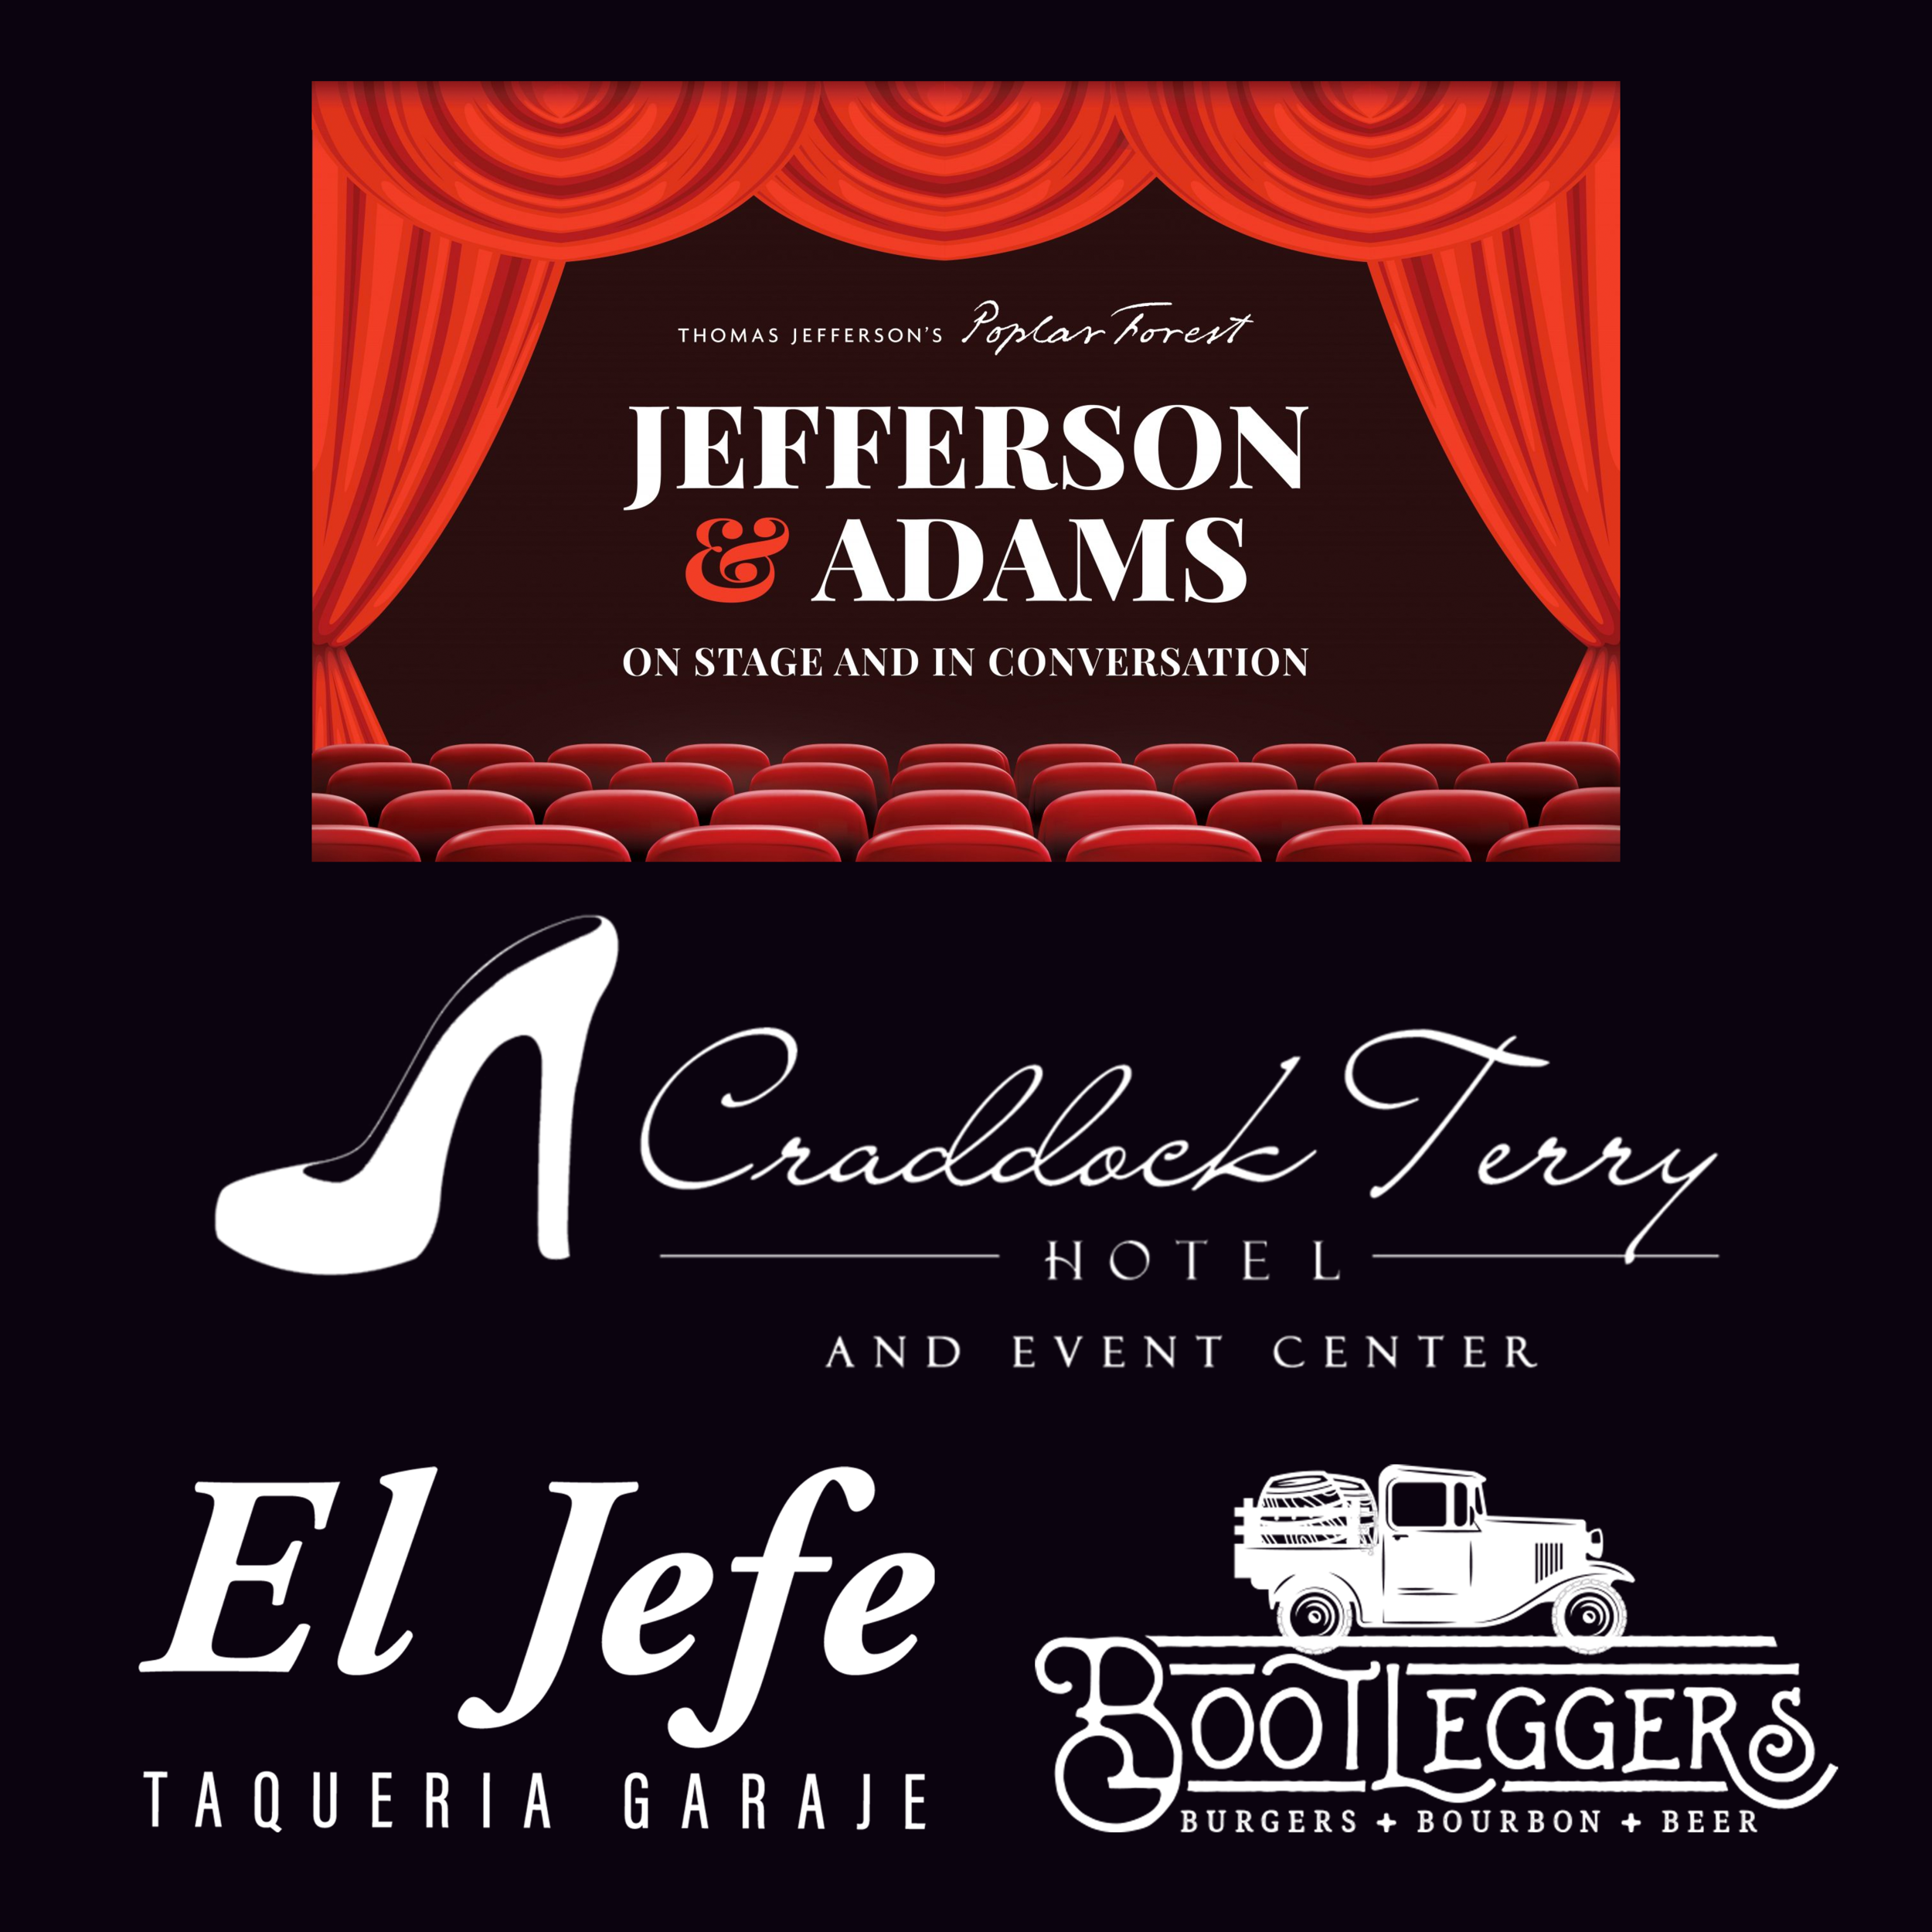 """Night in the 'Burg - One (1) Sunday night stay at the Craddock Terry hotelEl Jefe - $25.00 gift certificateBootleggers - $25.00 gift certificateTwo (2) tickets to Poplar Forest's """"Jefferson & Adams: On Stage and in Conversation"""" (this event will be held at the Academy on 4/27/19)"""